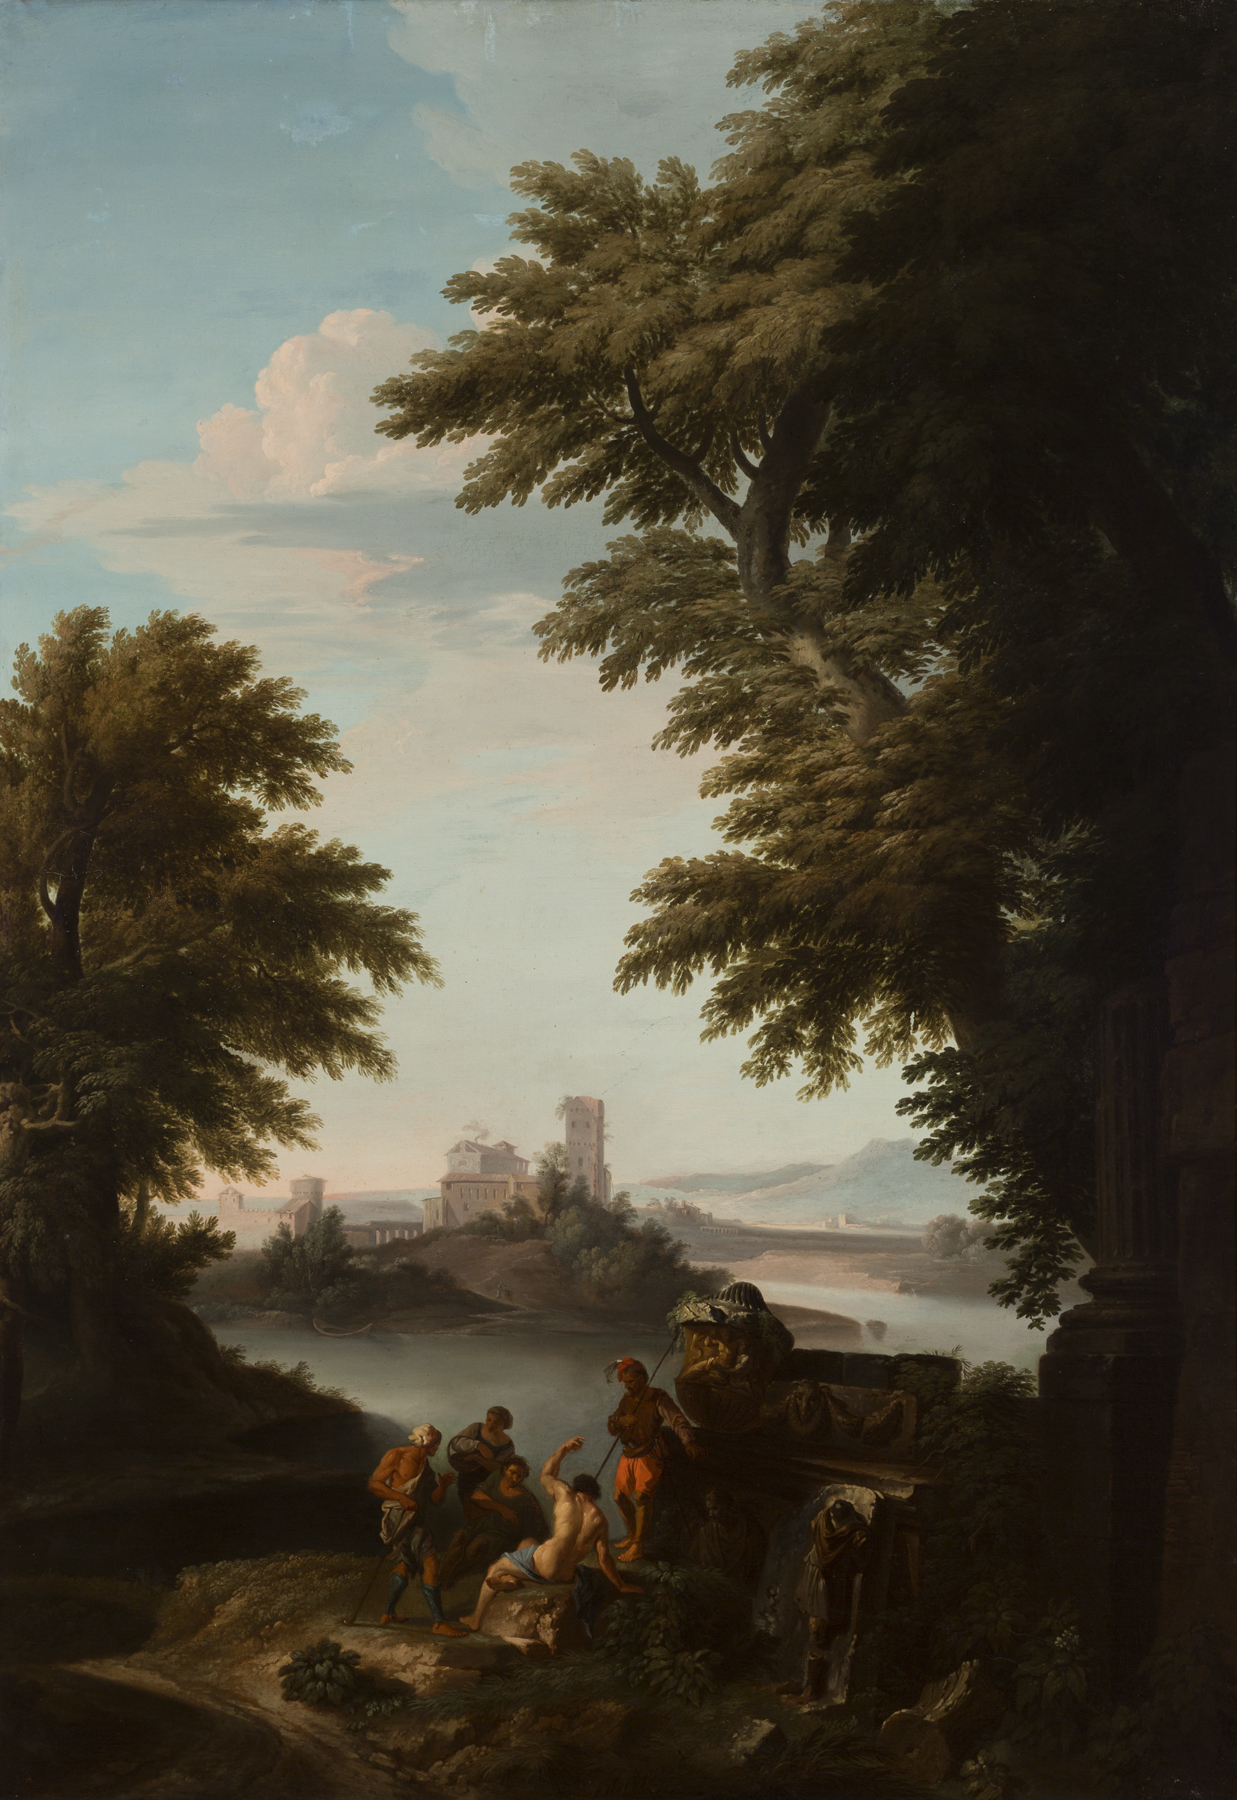 Andrea Locatelli (Italian, 1695–1741), Mountainous Landscape with Shepherds and Animals, ca. 1730. Oil on canvas. Milwaukee Art Museum, Gift of Mr. and Mrs. William D. Kyle, Sr. M1967.125. Photo credit: John R. Glembin.